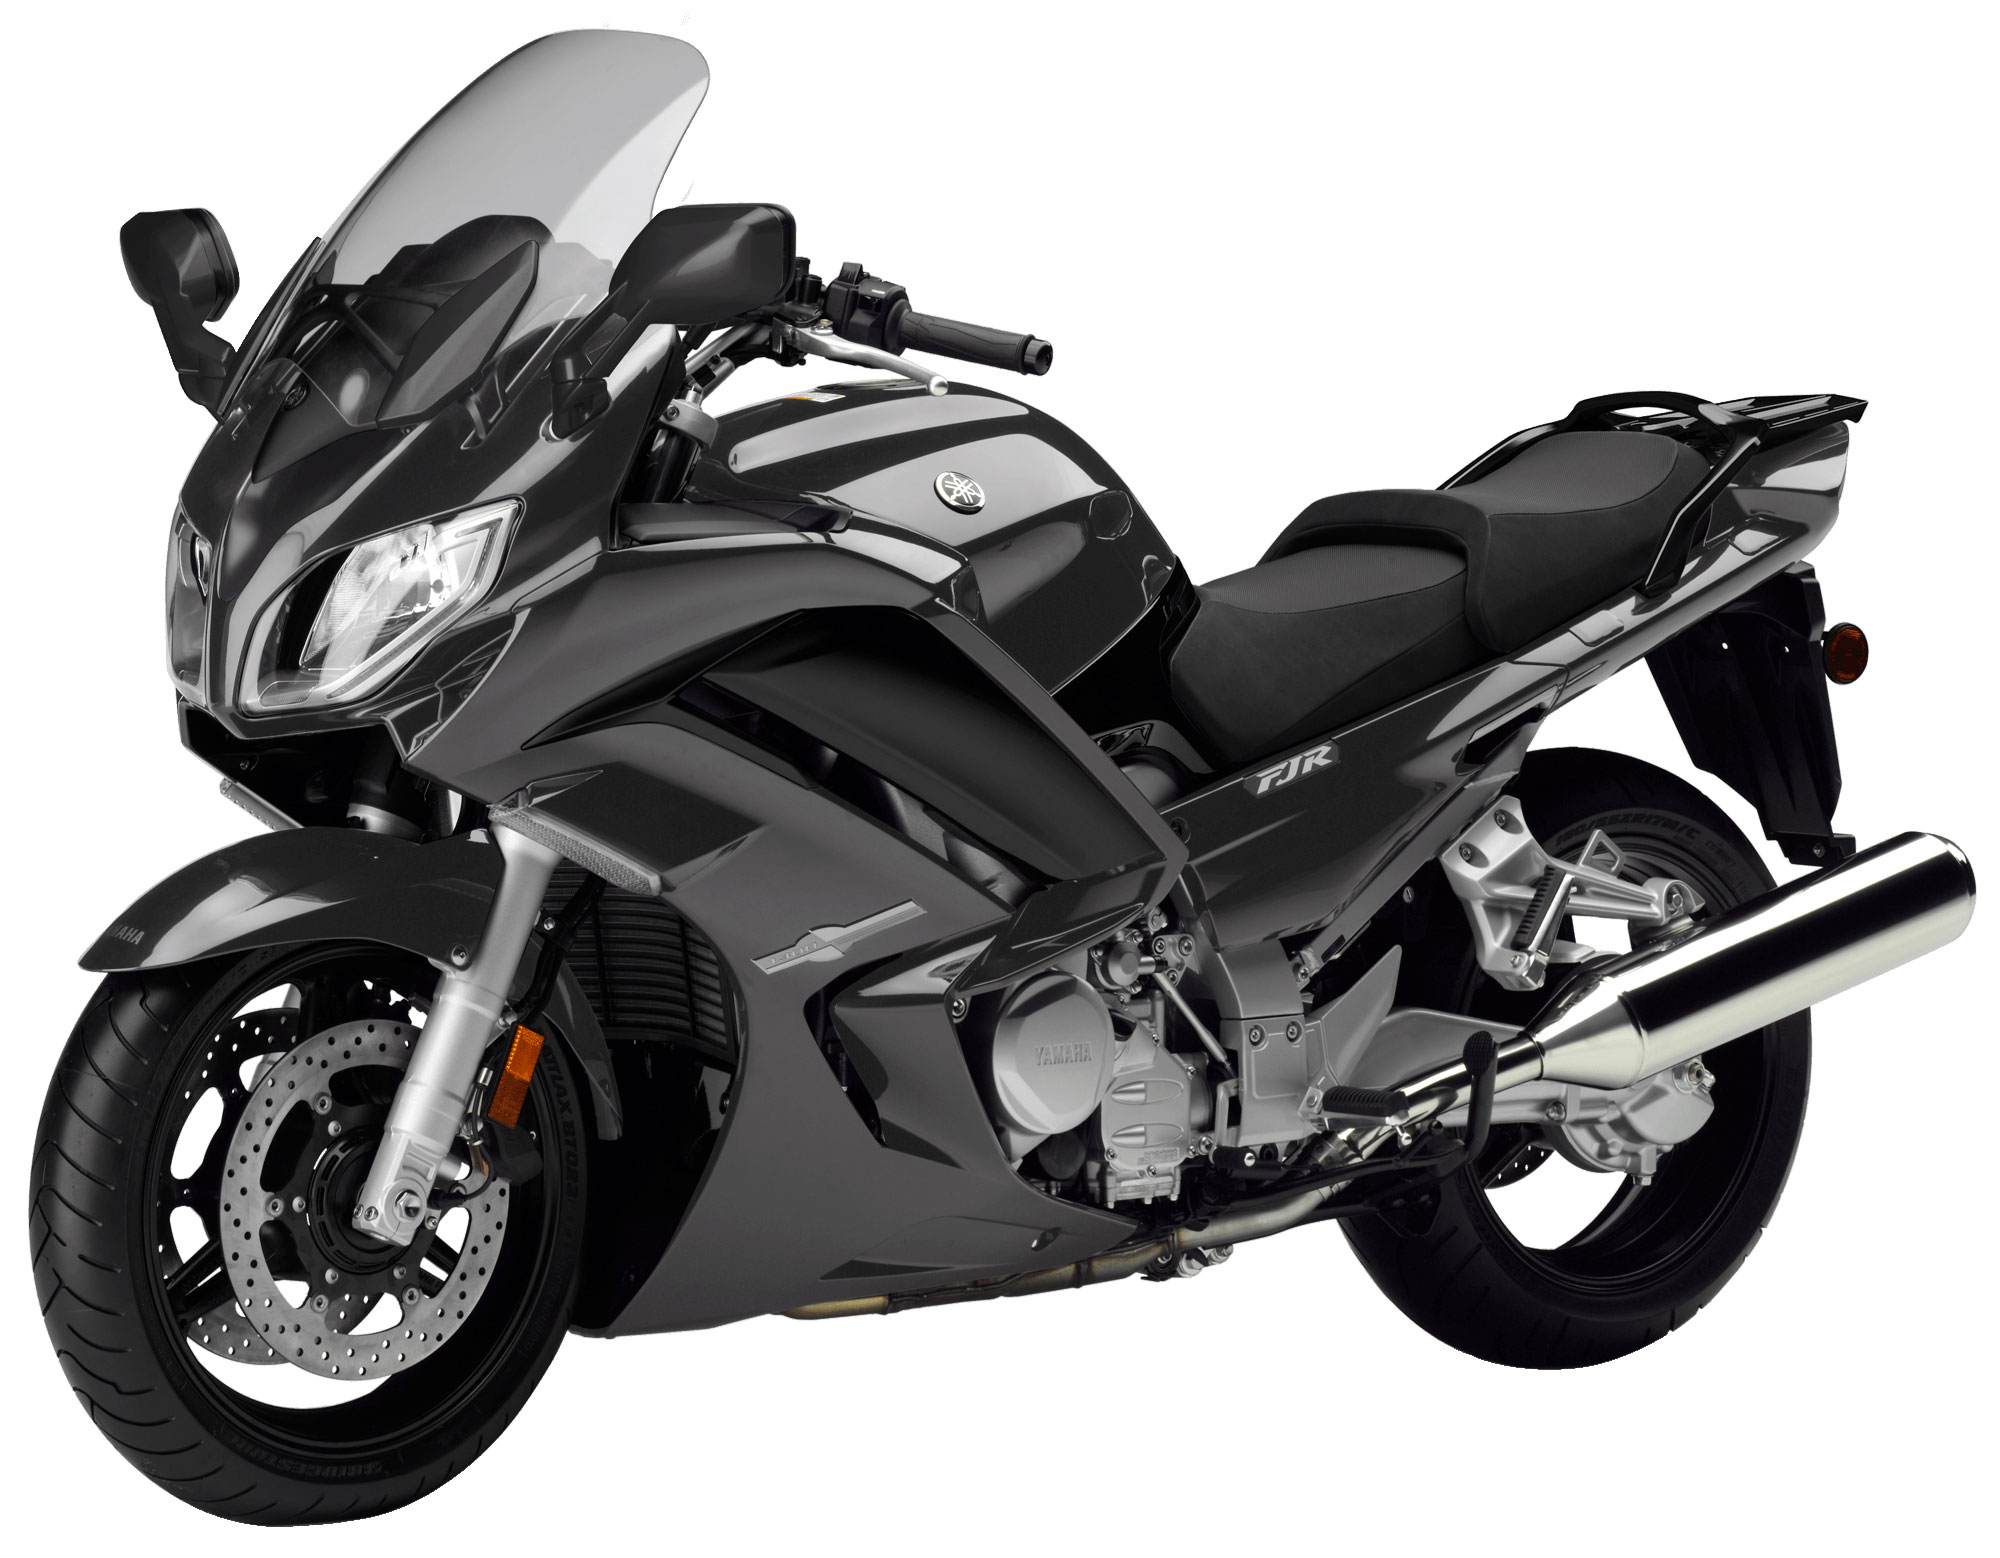 2015 yamaha fjr1300 review